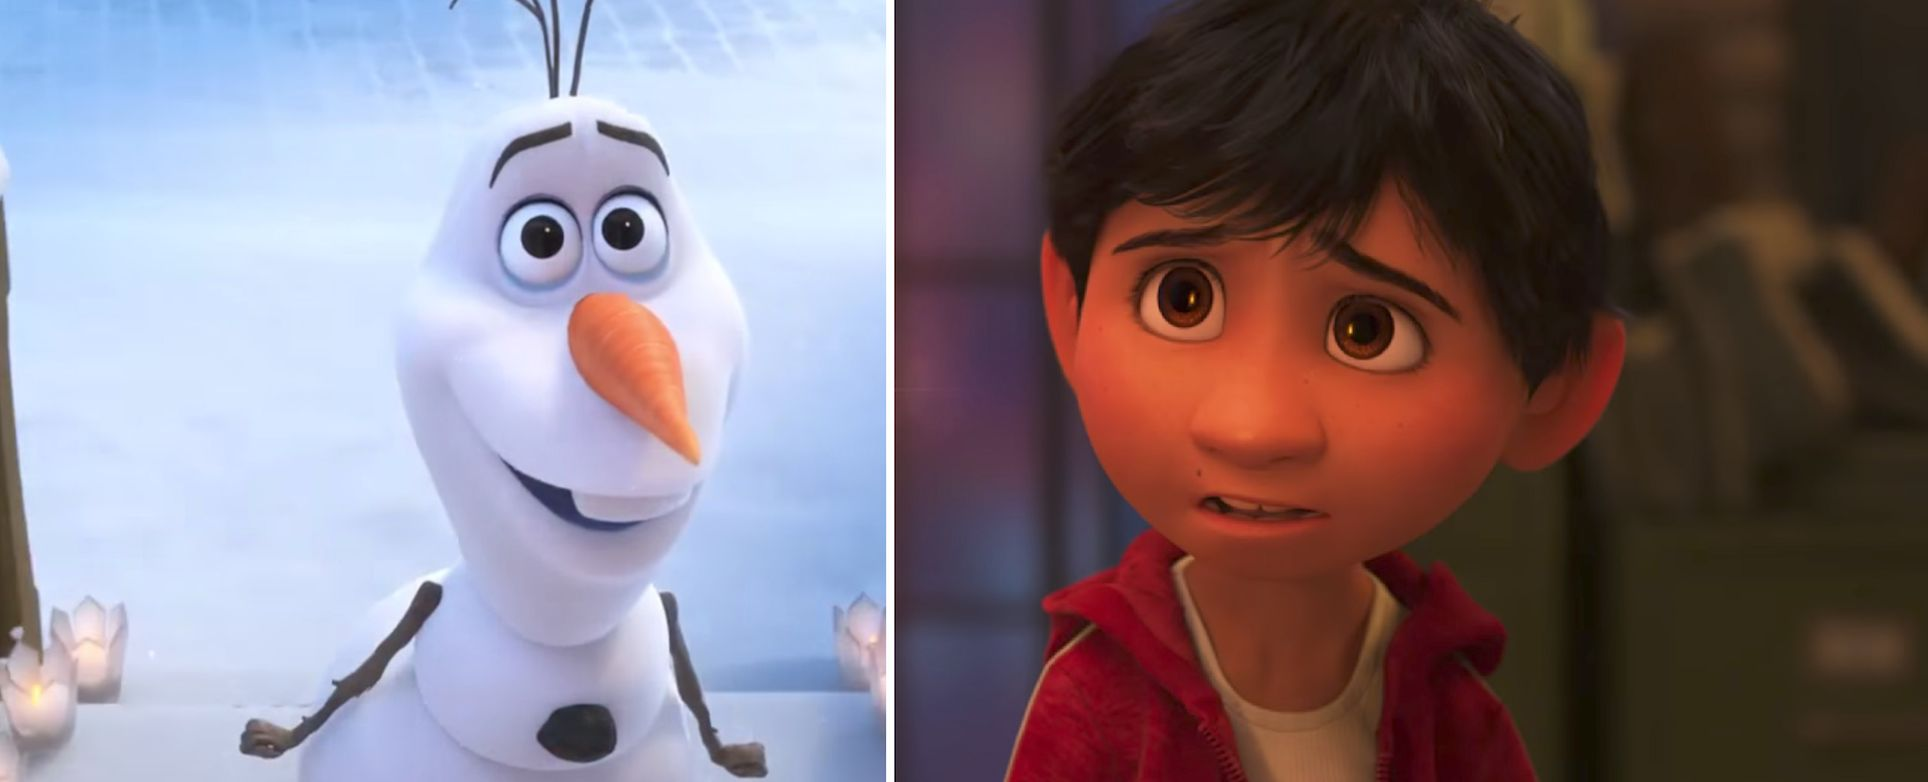 'Coco' Director Addresses Criticism Of That Long 'Frozen' Short